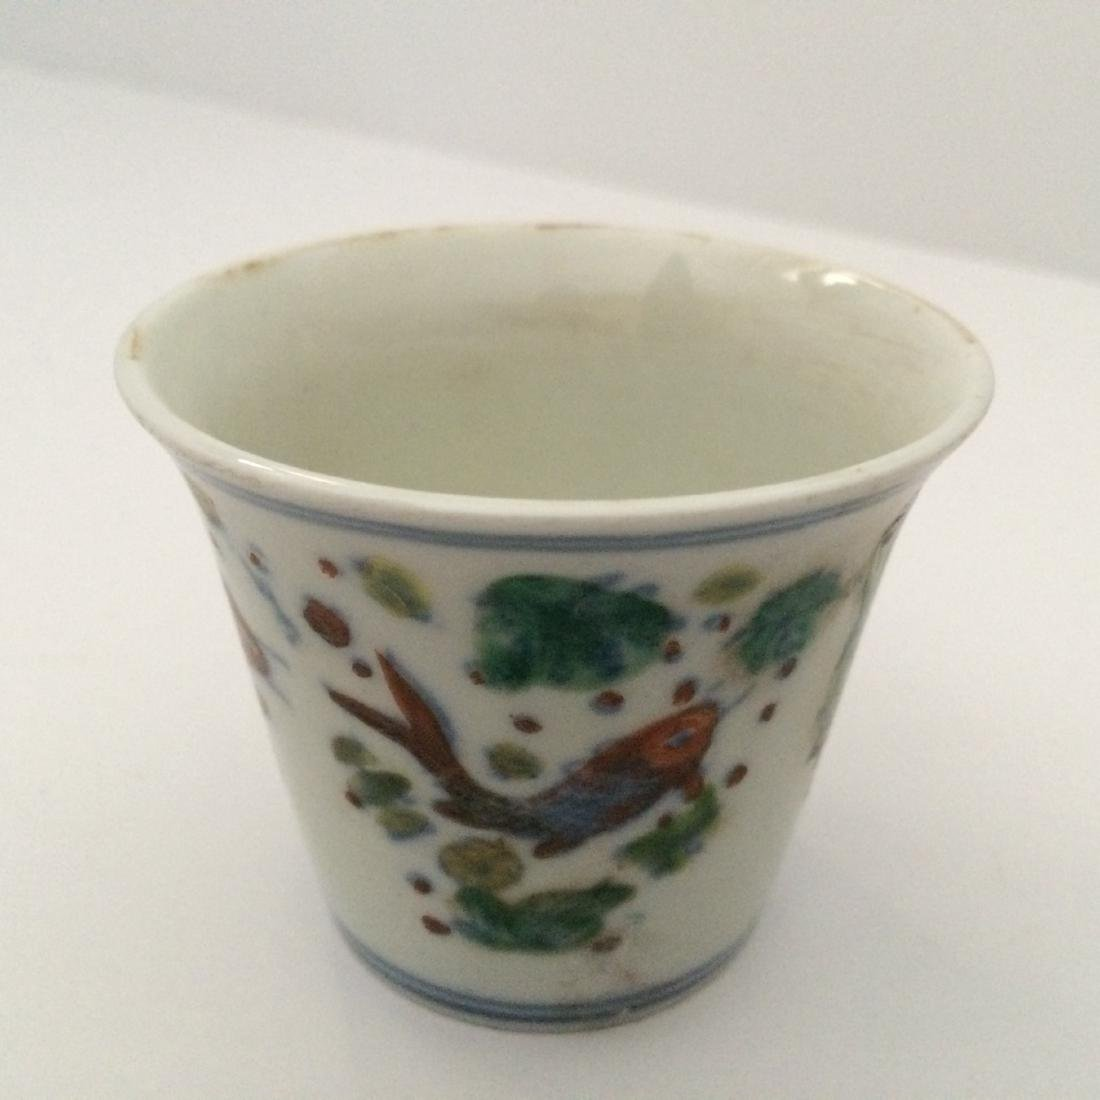 Dou Cai Cup with Chin Hua Mark, Fish Design